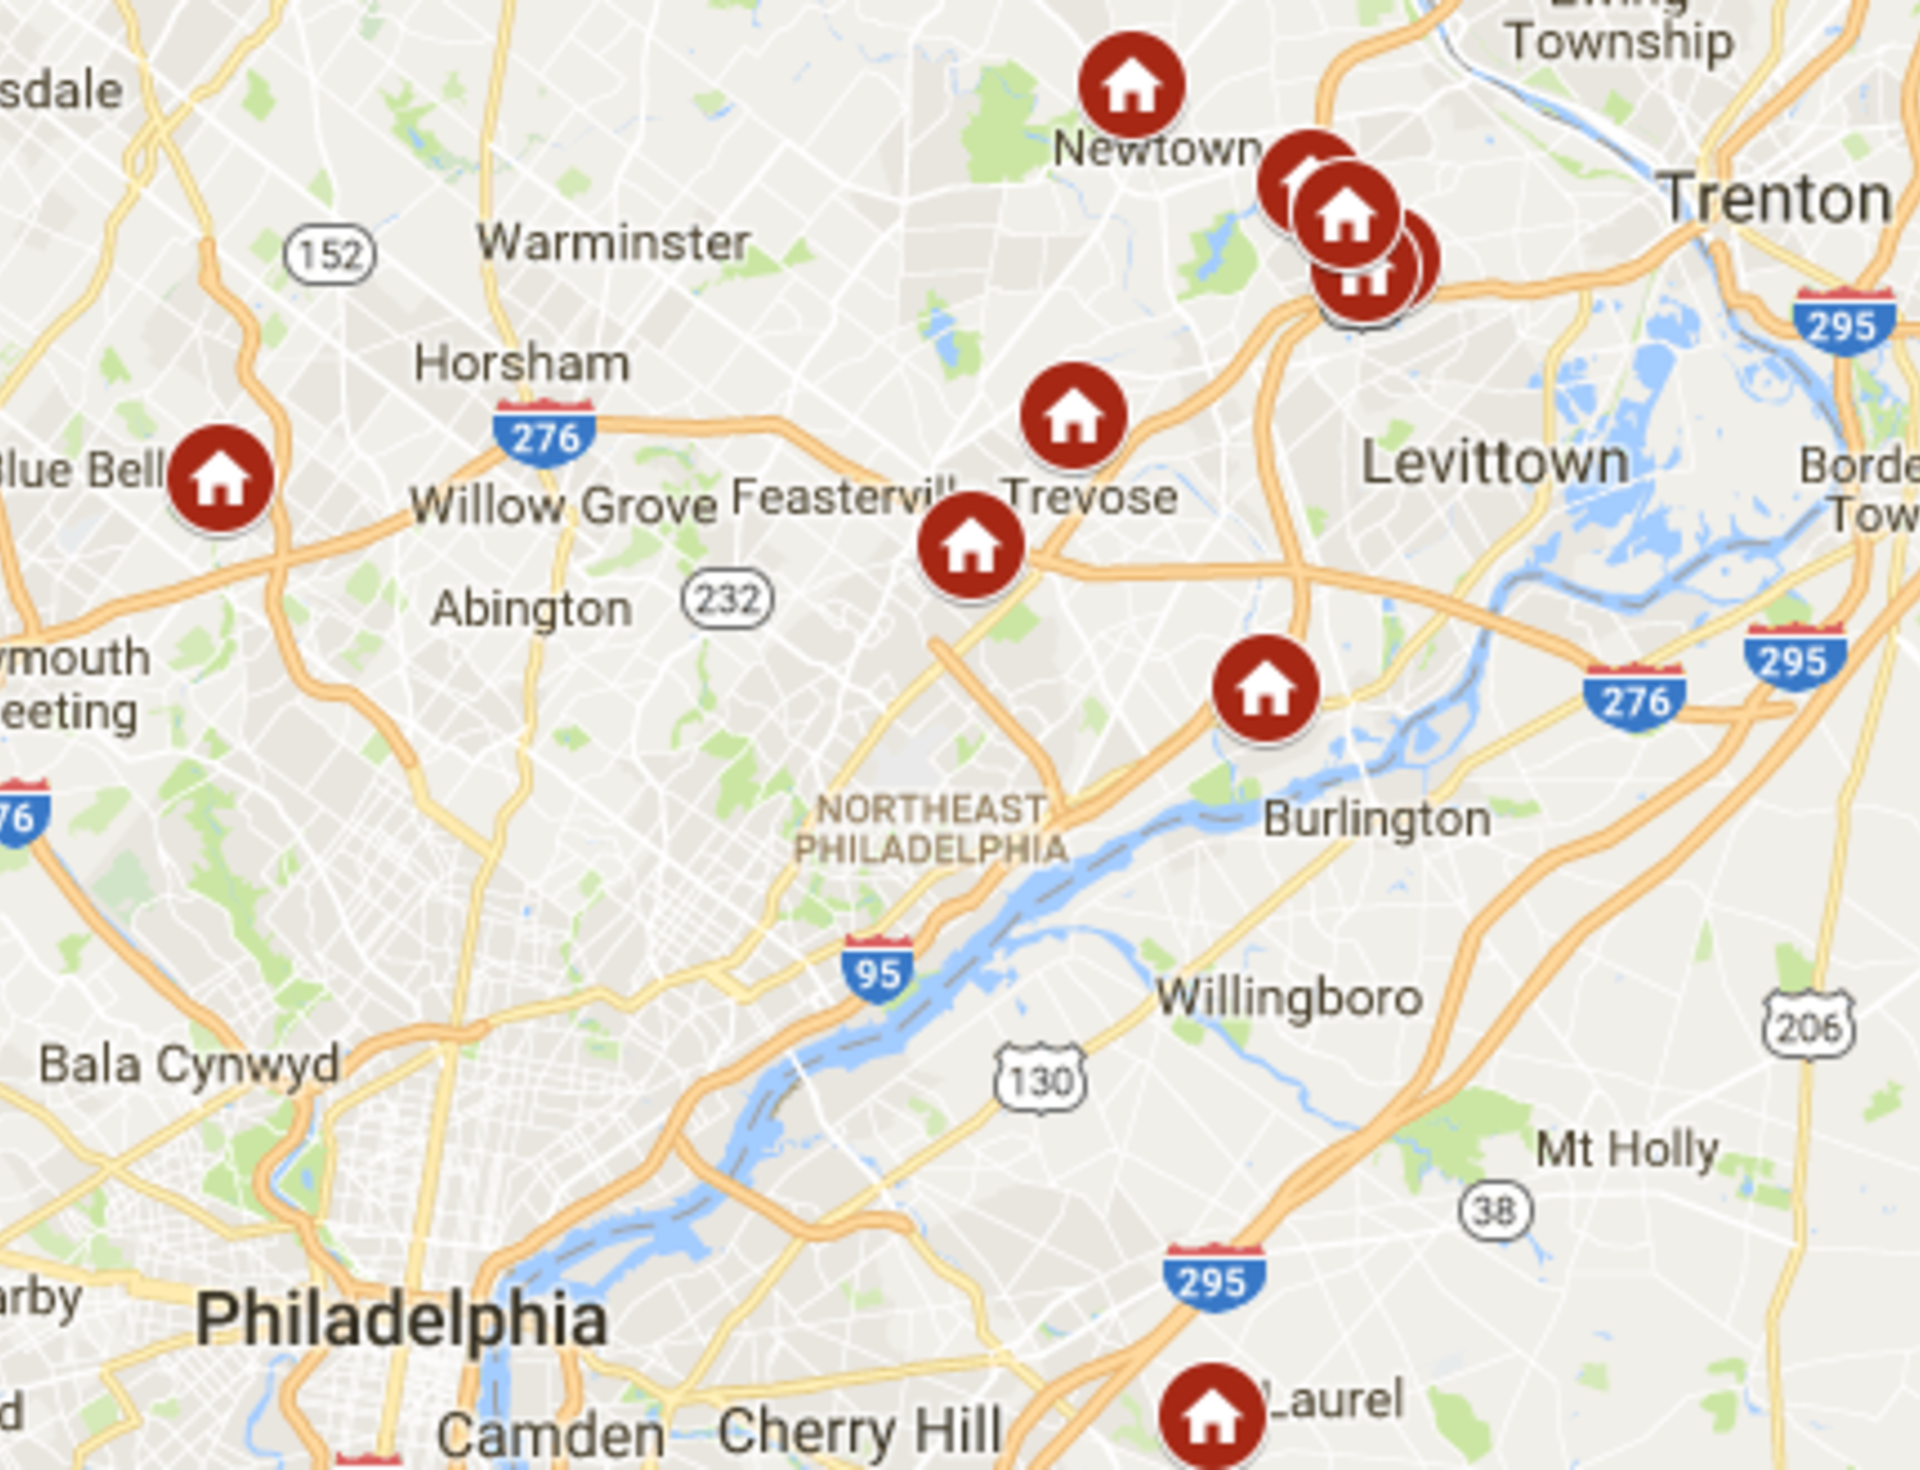 Keller Williams Newtown's open houses October 28th – October 29th